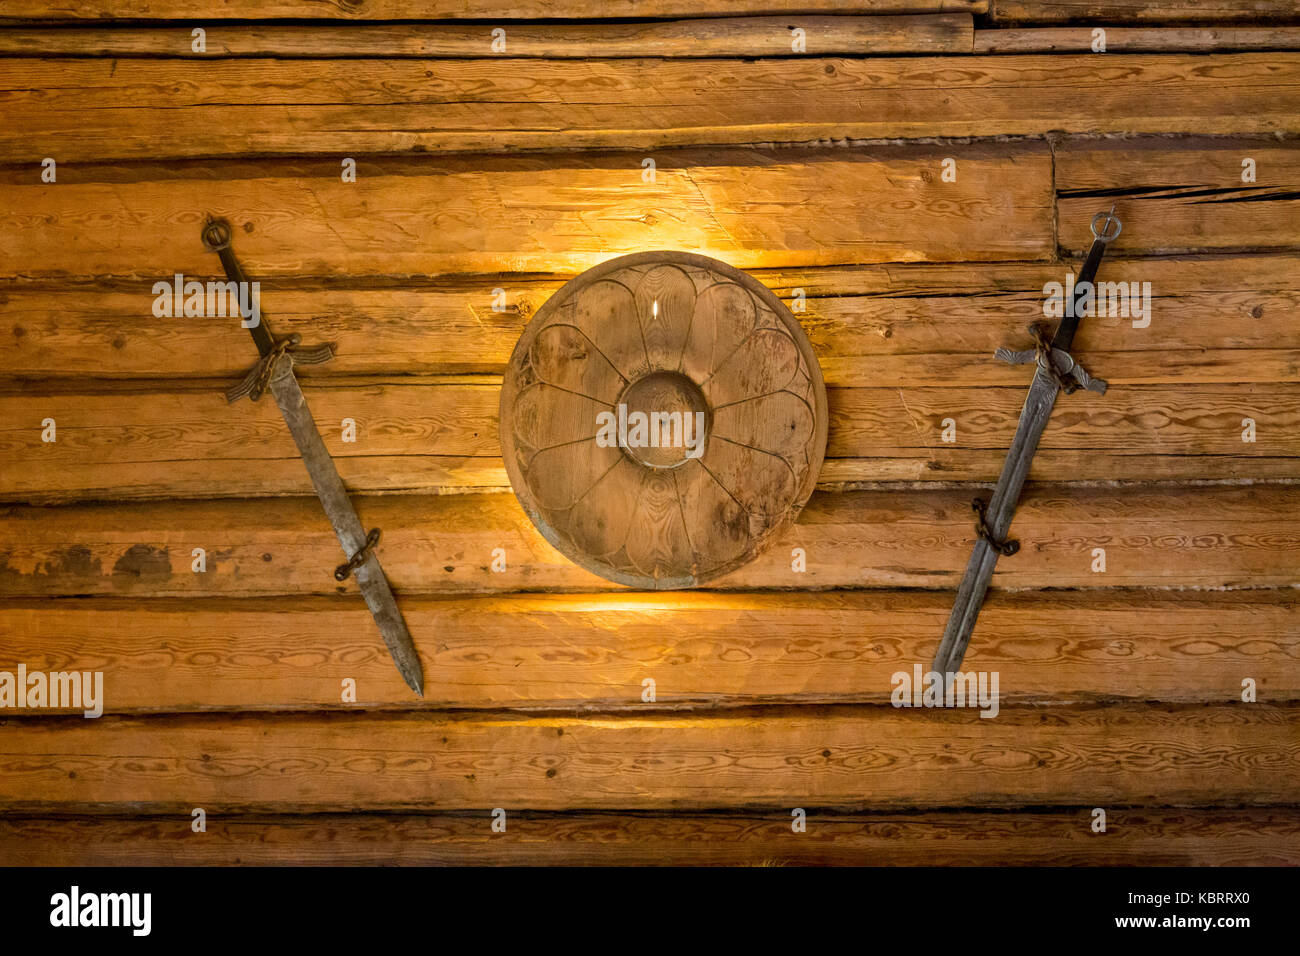 Two medieval sword and shield on wall - Stock Image